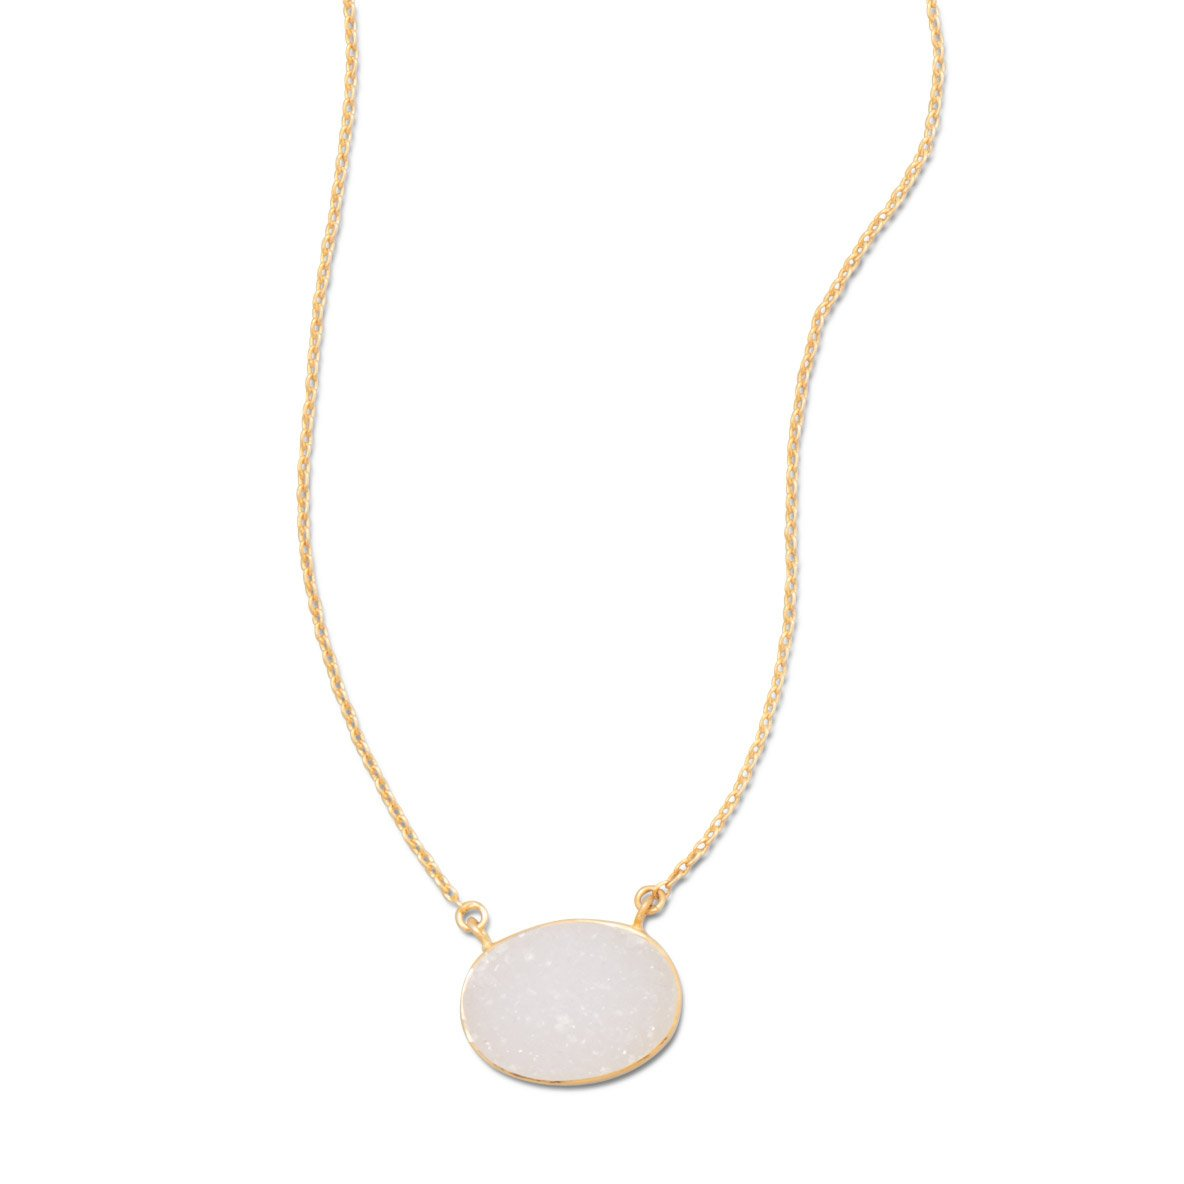 2 Inch Extention Matte Finish Gld-Flashed St 16 Inch Silver Necklace 13mm X 18mm Oval White Druzy